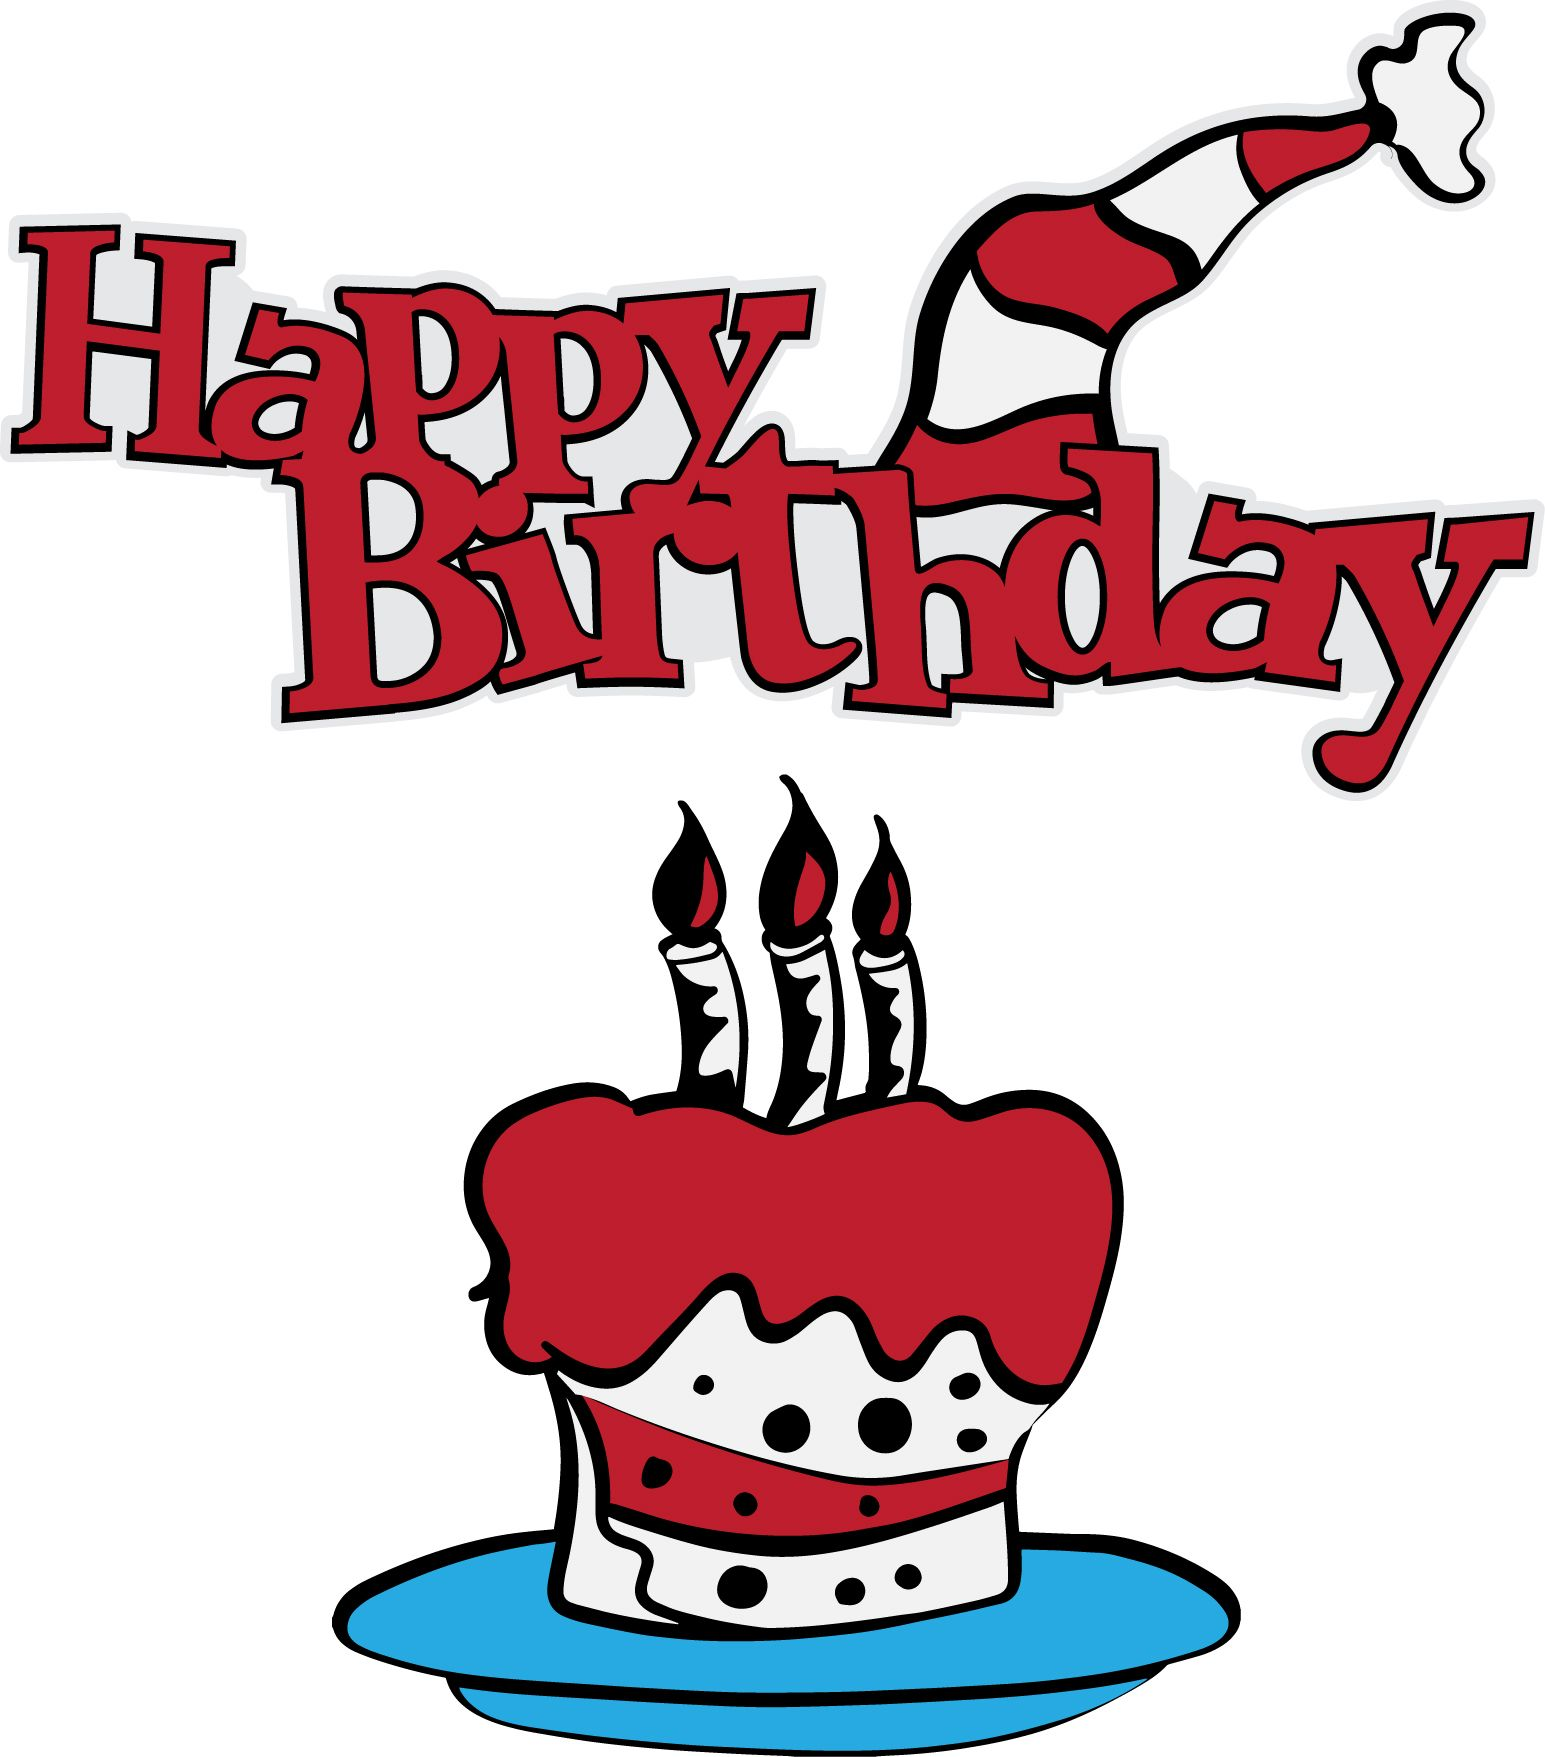 Happy Birthday Dr Seuss Clipart At Getdrawings Free For